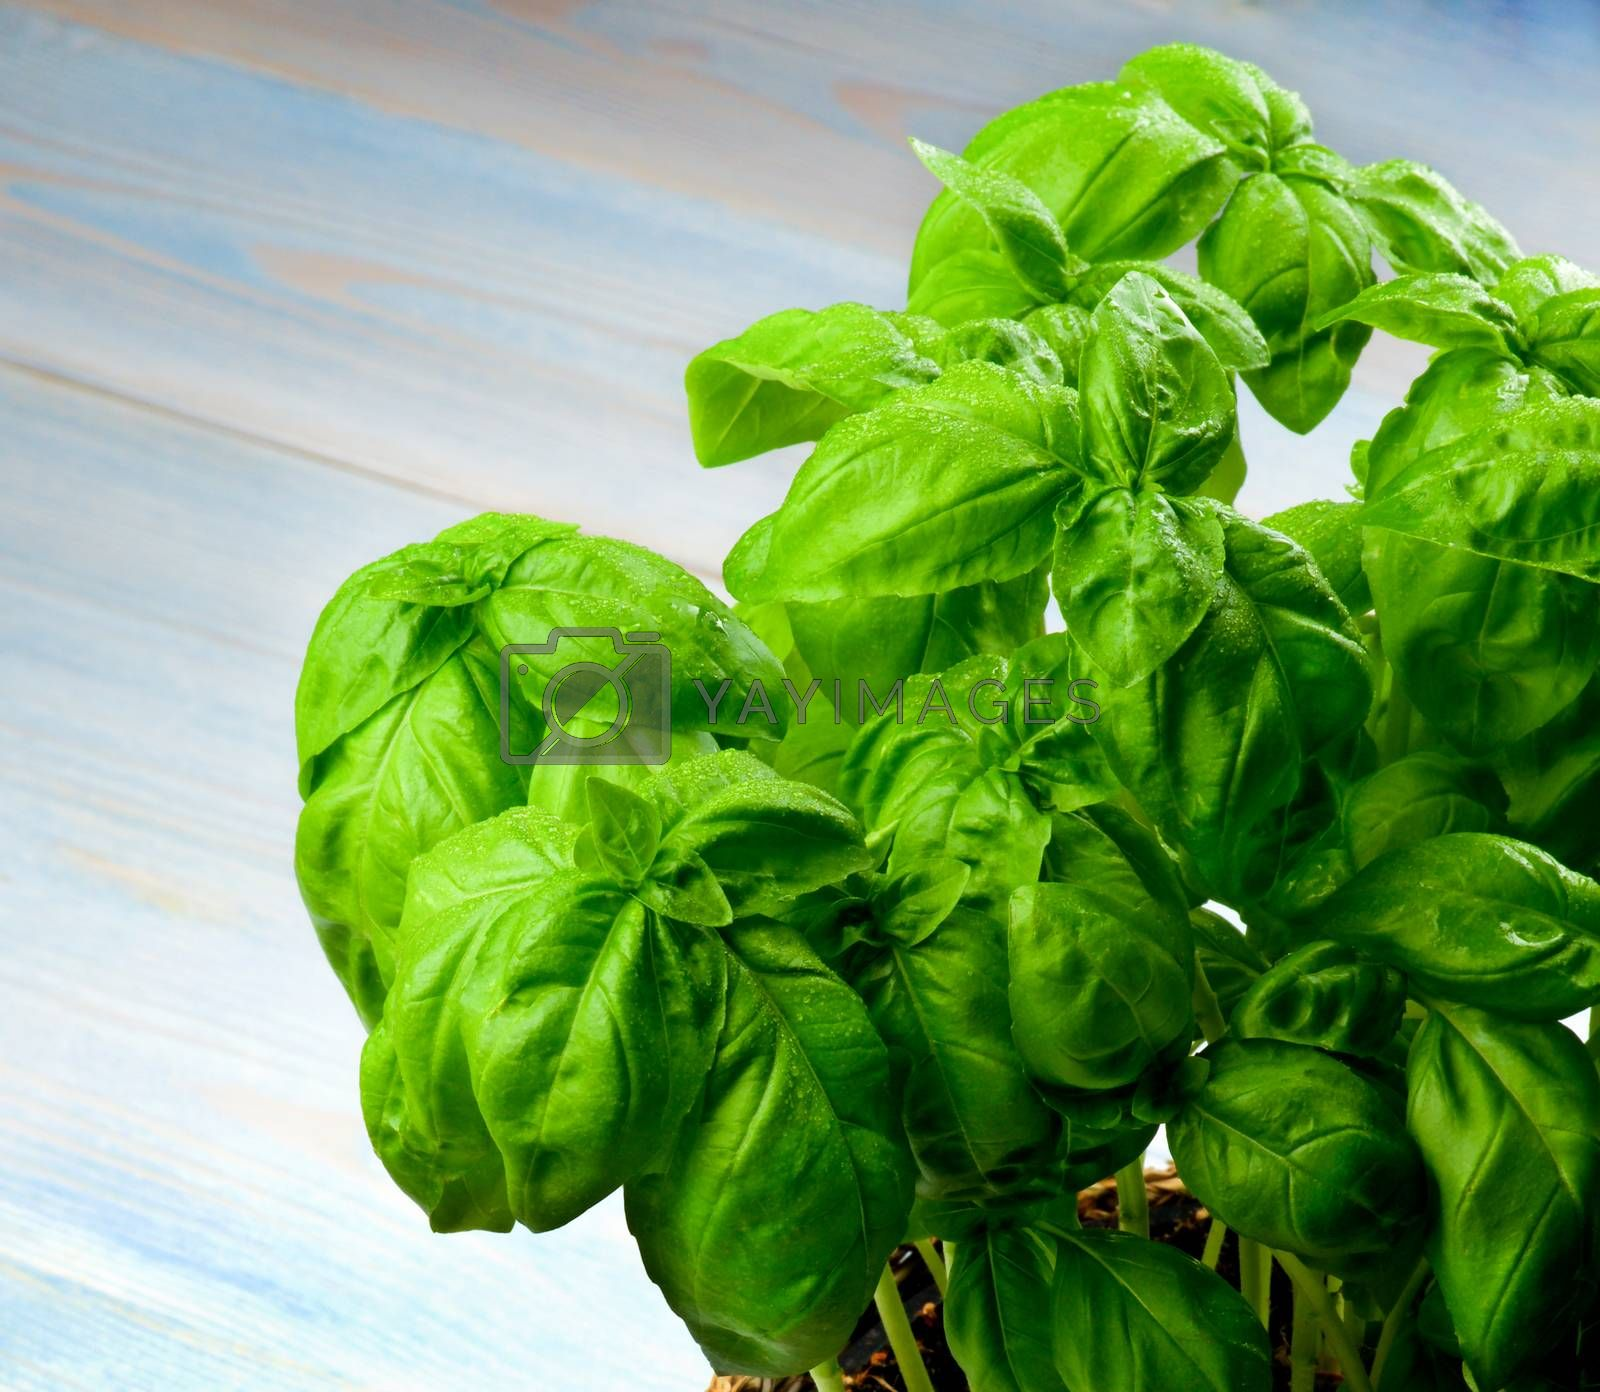 Perfect Lush Foliage Fresh Green Basil  with Water Drops Cross Section on Blue Wooden background